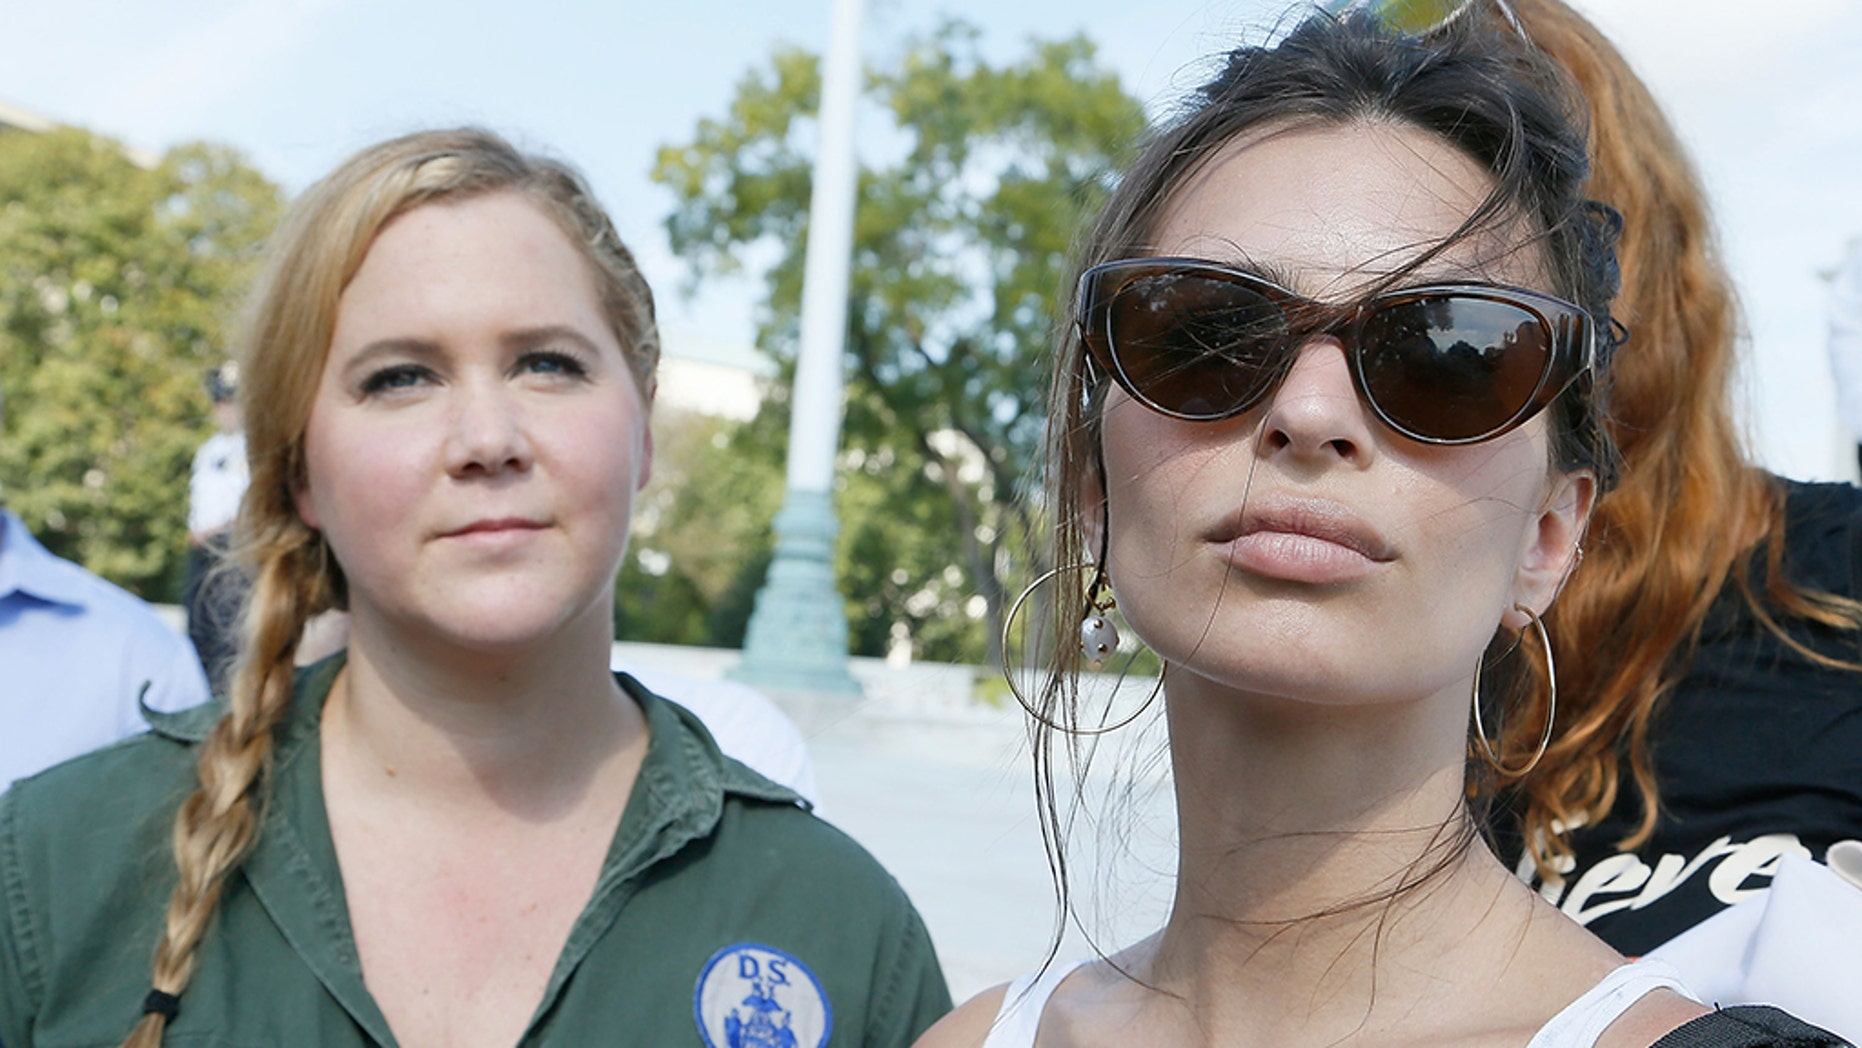 Amy Schumer, left, and Emily Ratajkowski were detained while protesting the Supreme Court nomination of Brett Kavanaugh in Washington, D.C., on Thursday.